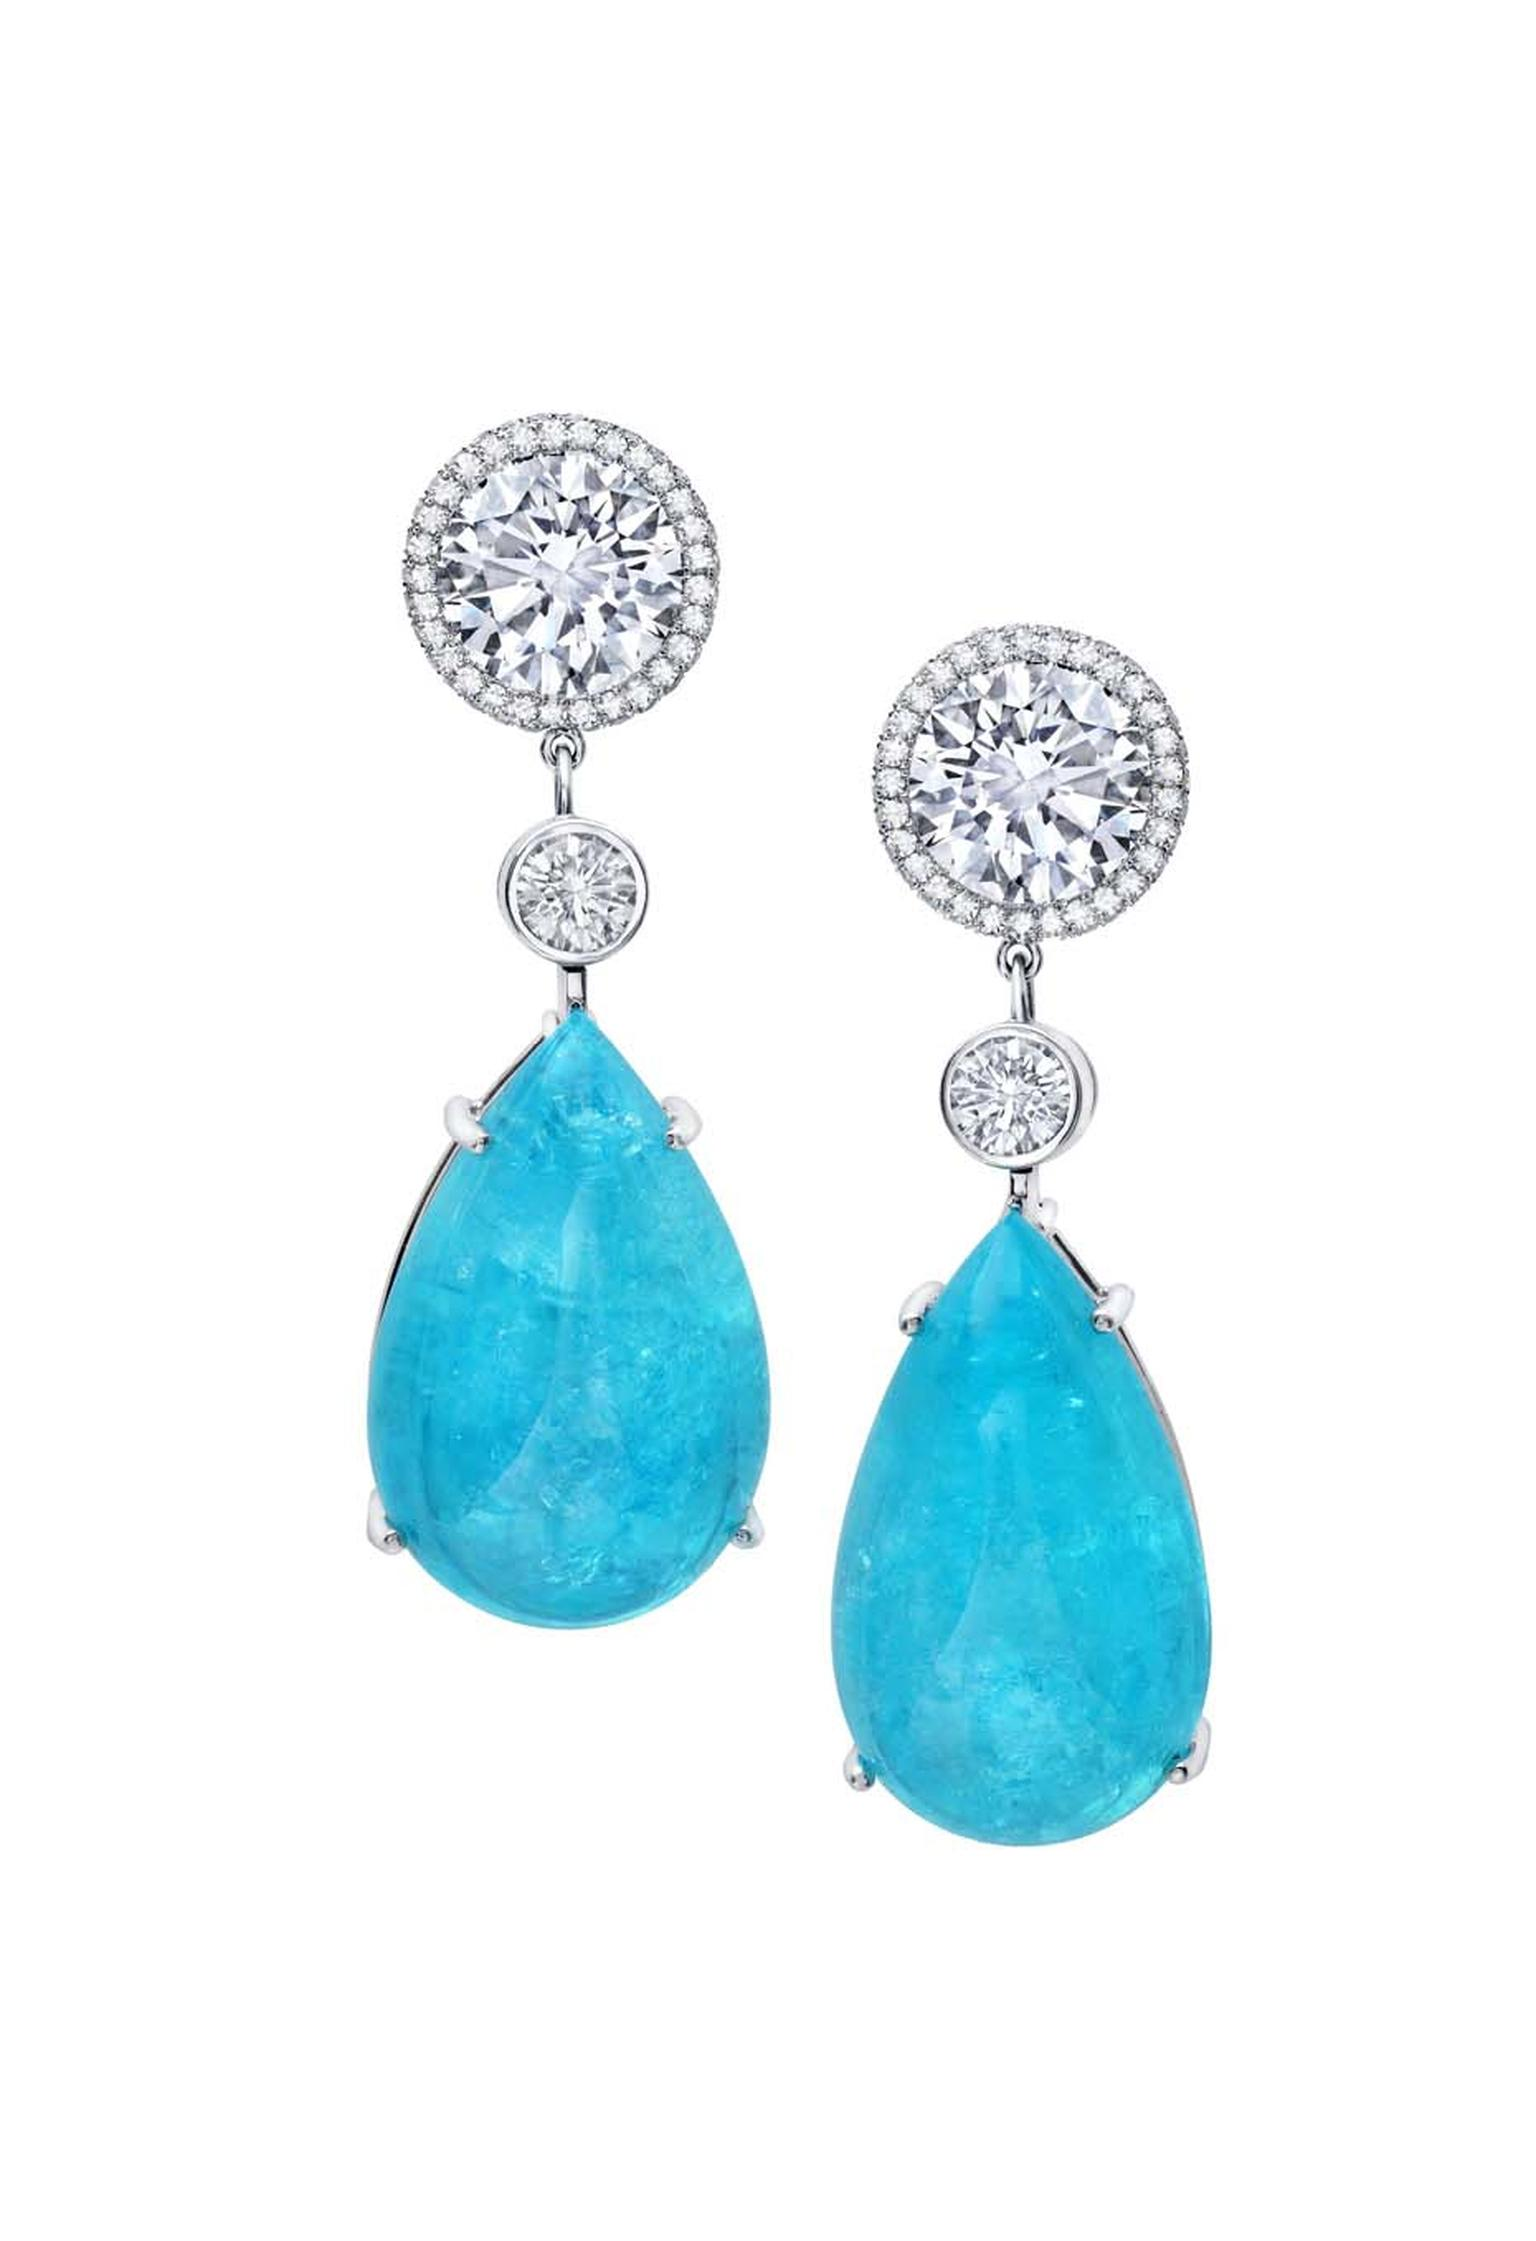 Martin Katz pear-shape Paraiba tourmaline earrings in platinum with diamonds, which are detachable from the necklace.